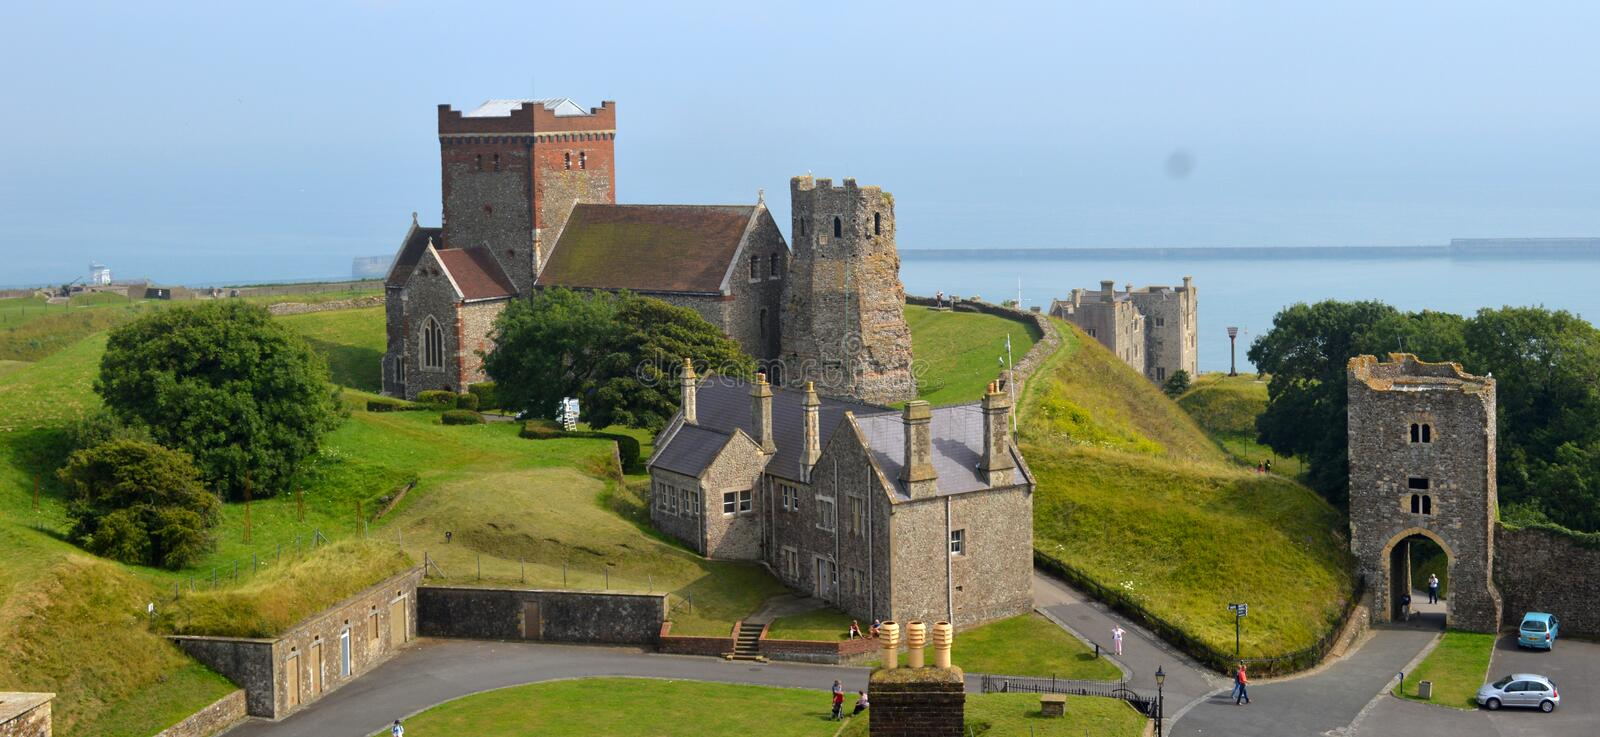 Dover Castle Buildings stock photography